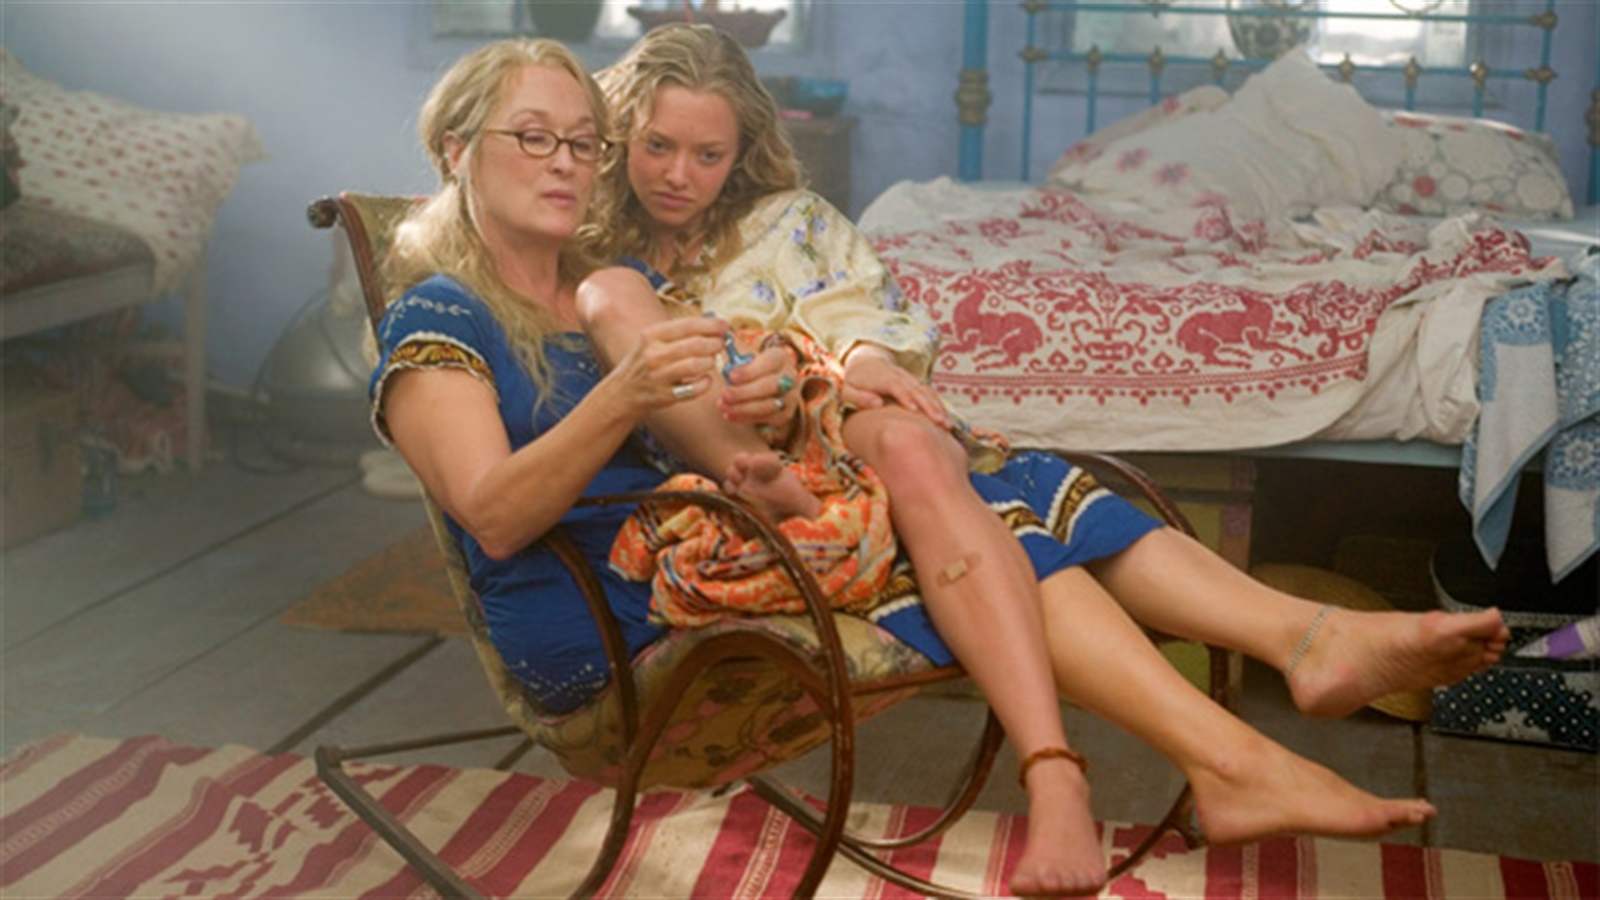 Erotic Nude Mother And Daughter - Best Porn Xxx Pics-7430